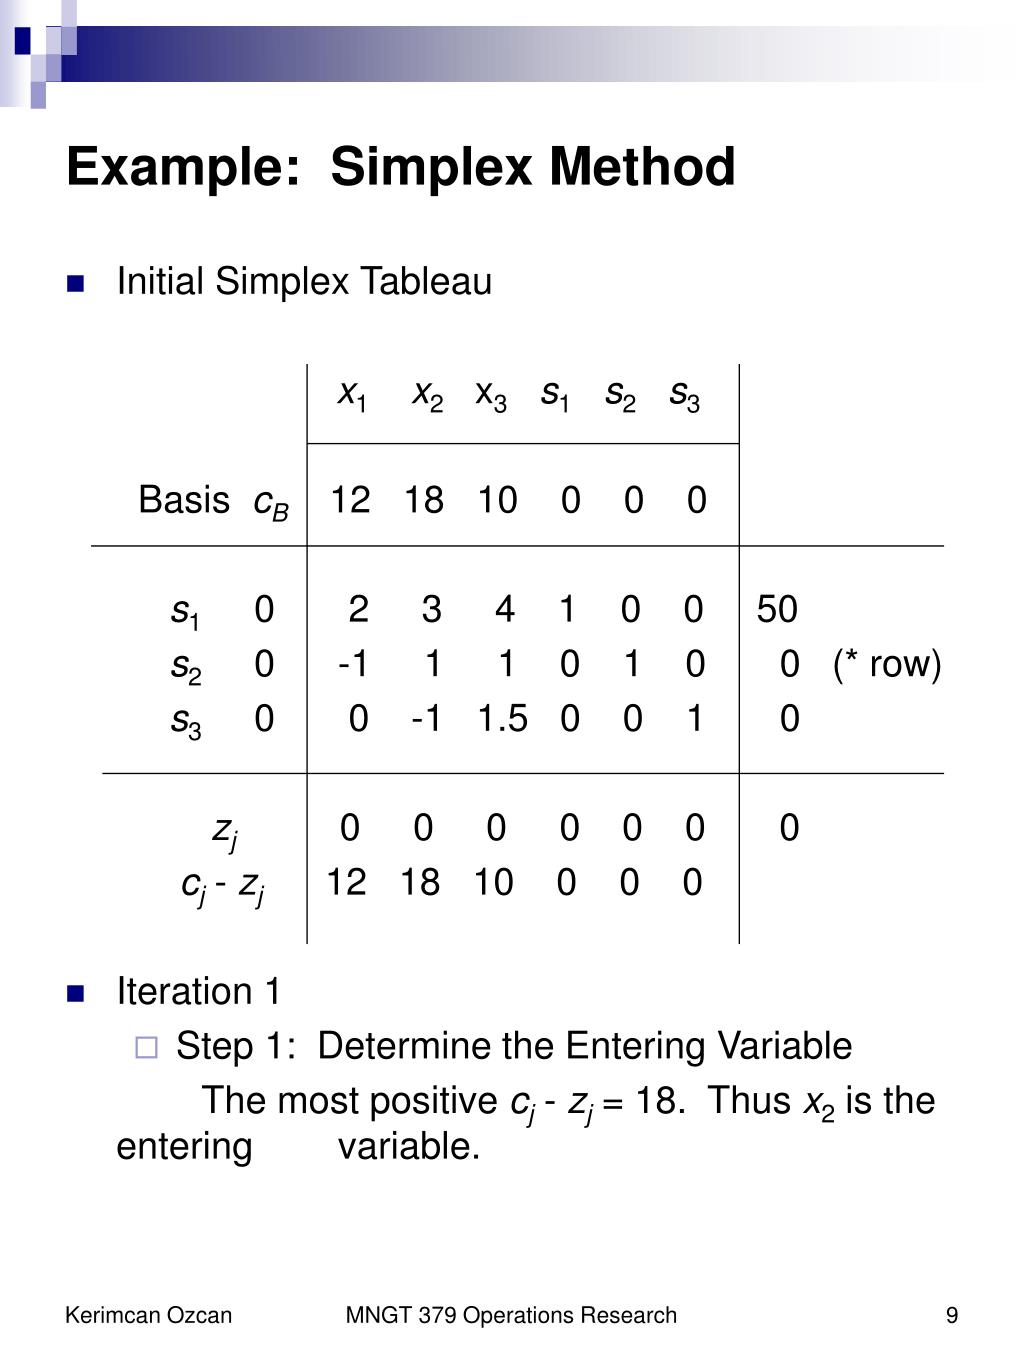 Research on the Simplex Method